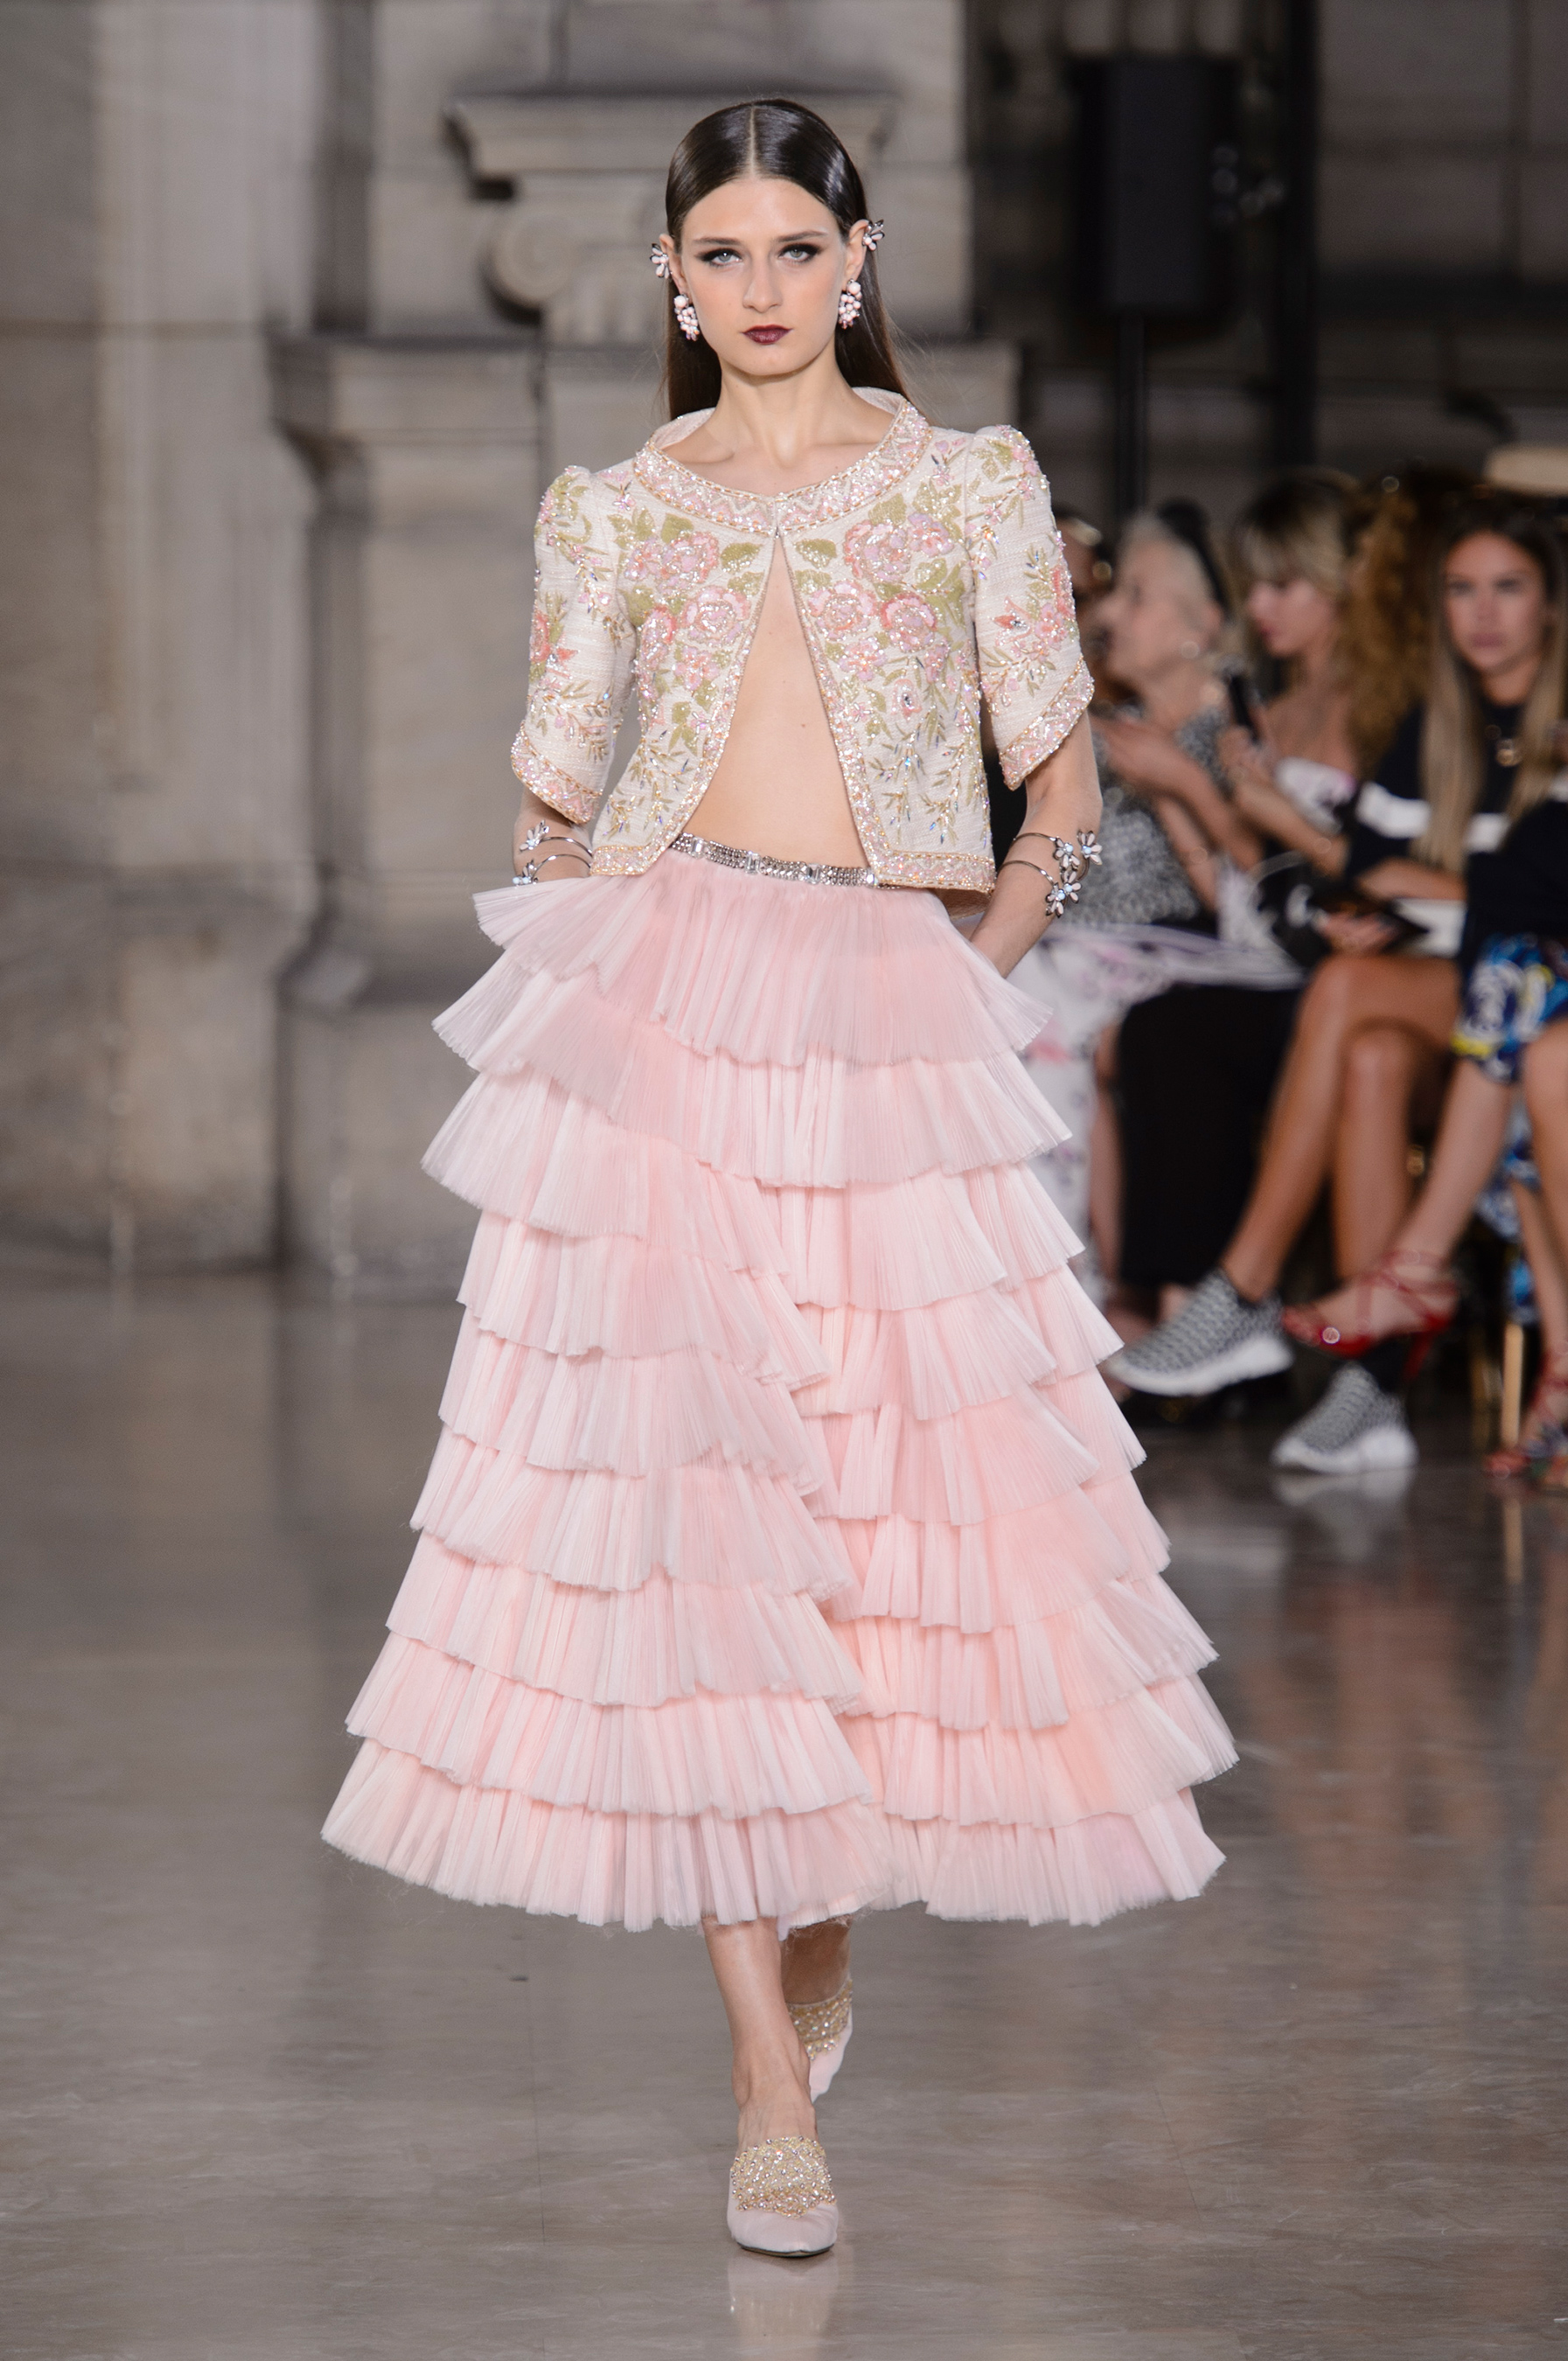 D fil georges hobeika haute couture automne hiver 2017 for A haute couture